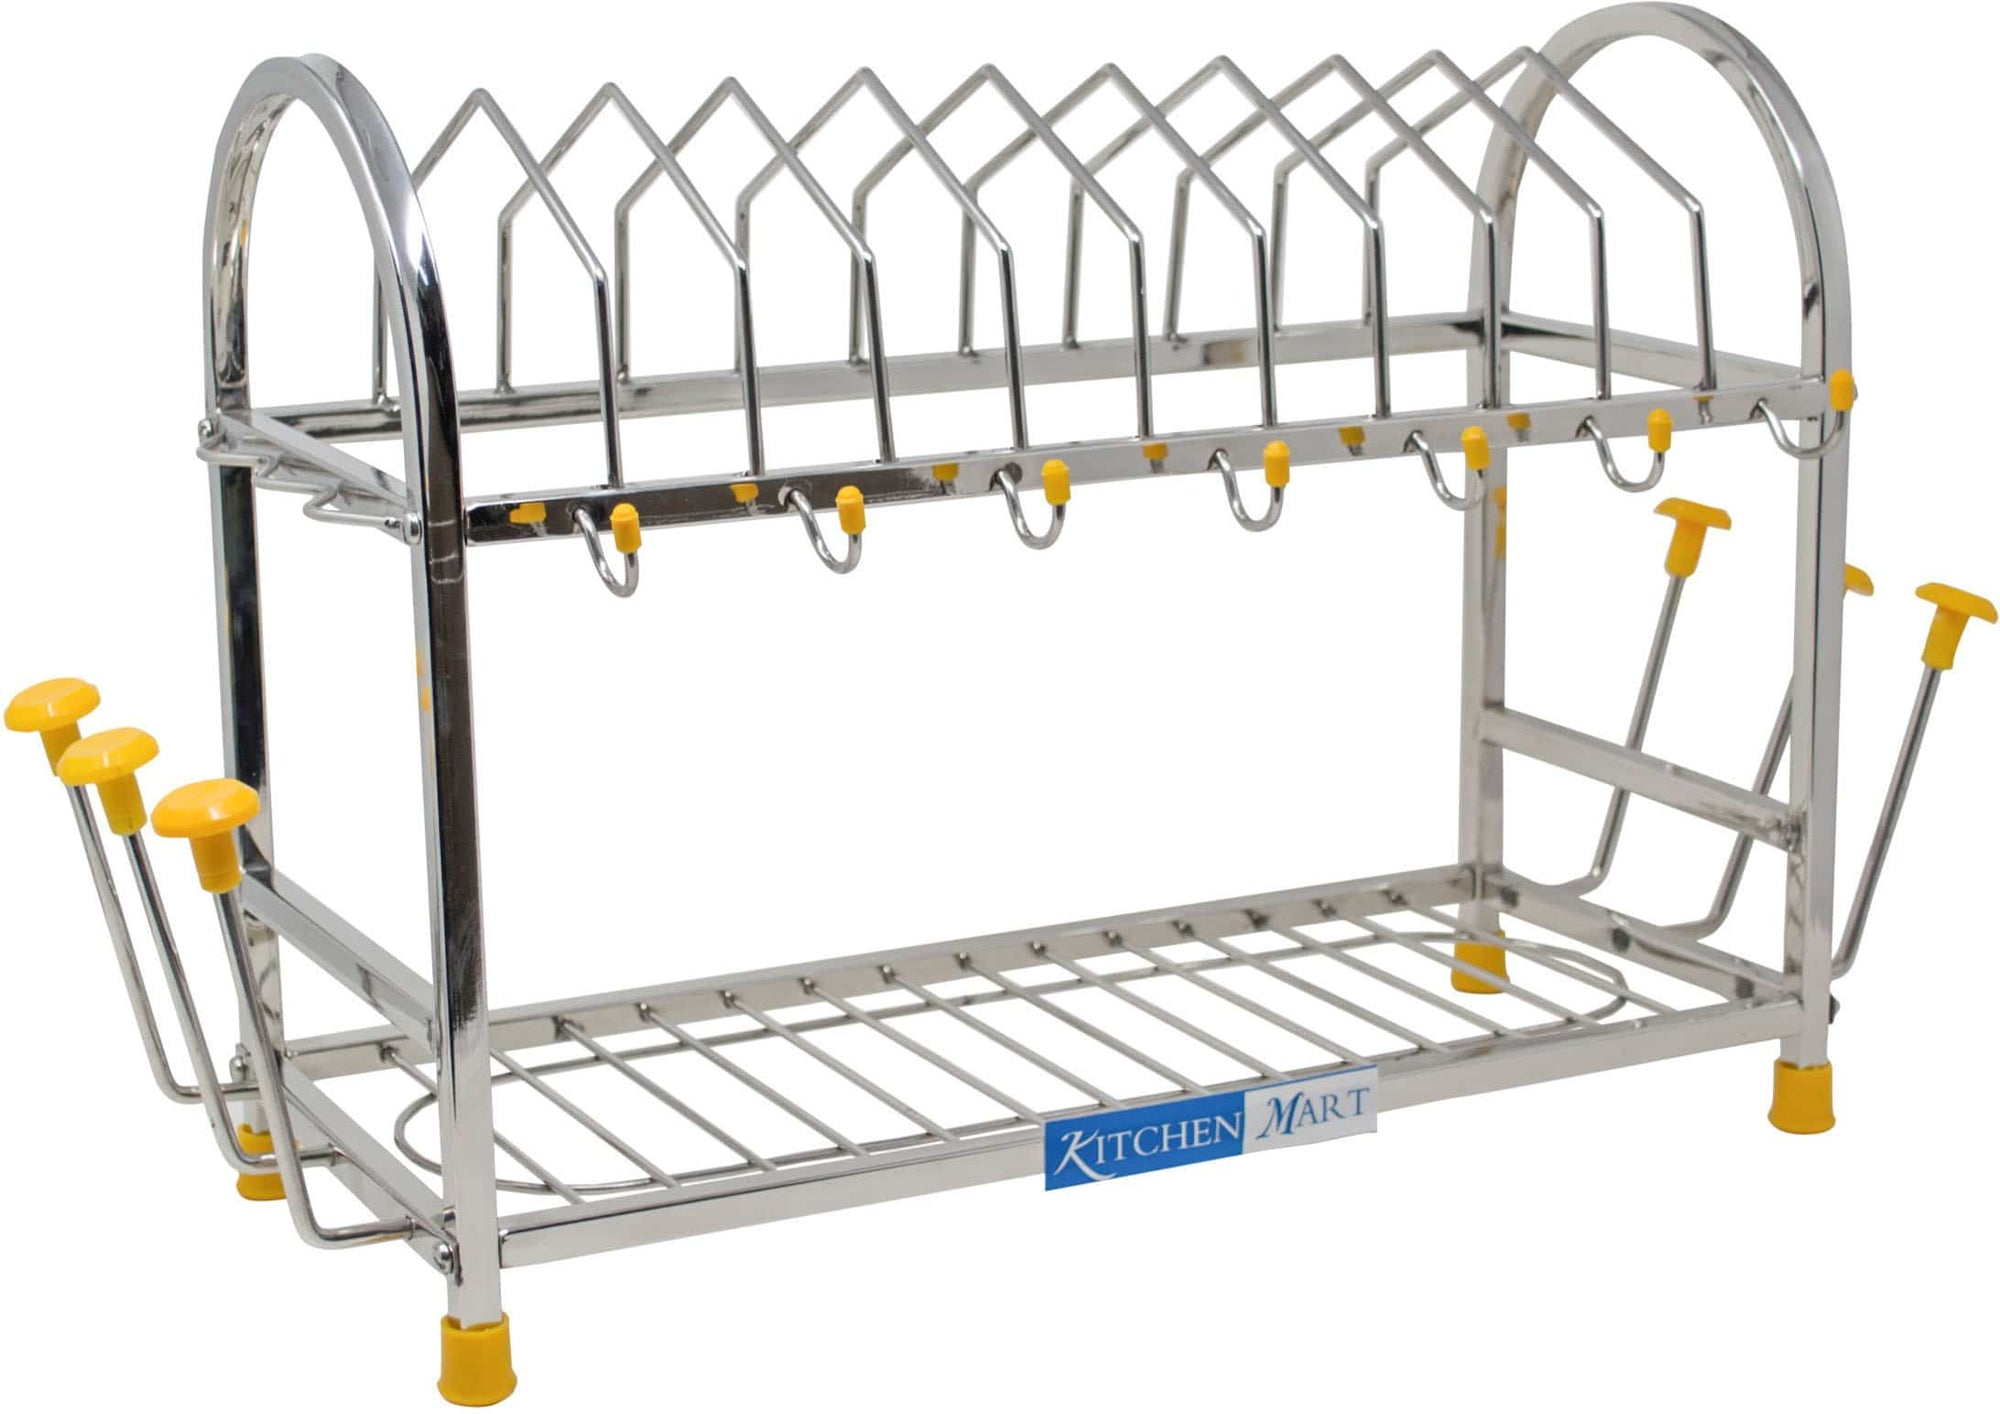 Kitchen Mart Stainless Steel kitchen rack (5 in 1) - KITCHEN MART